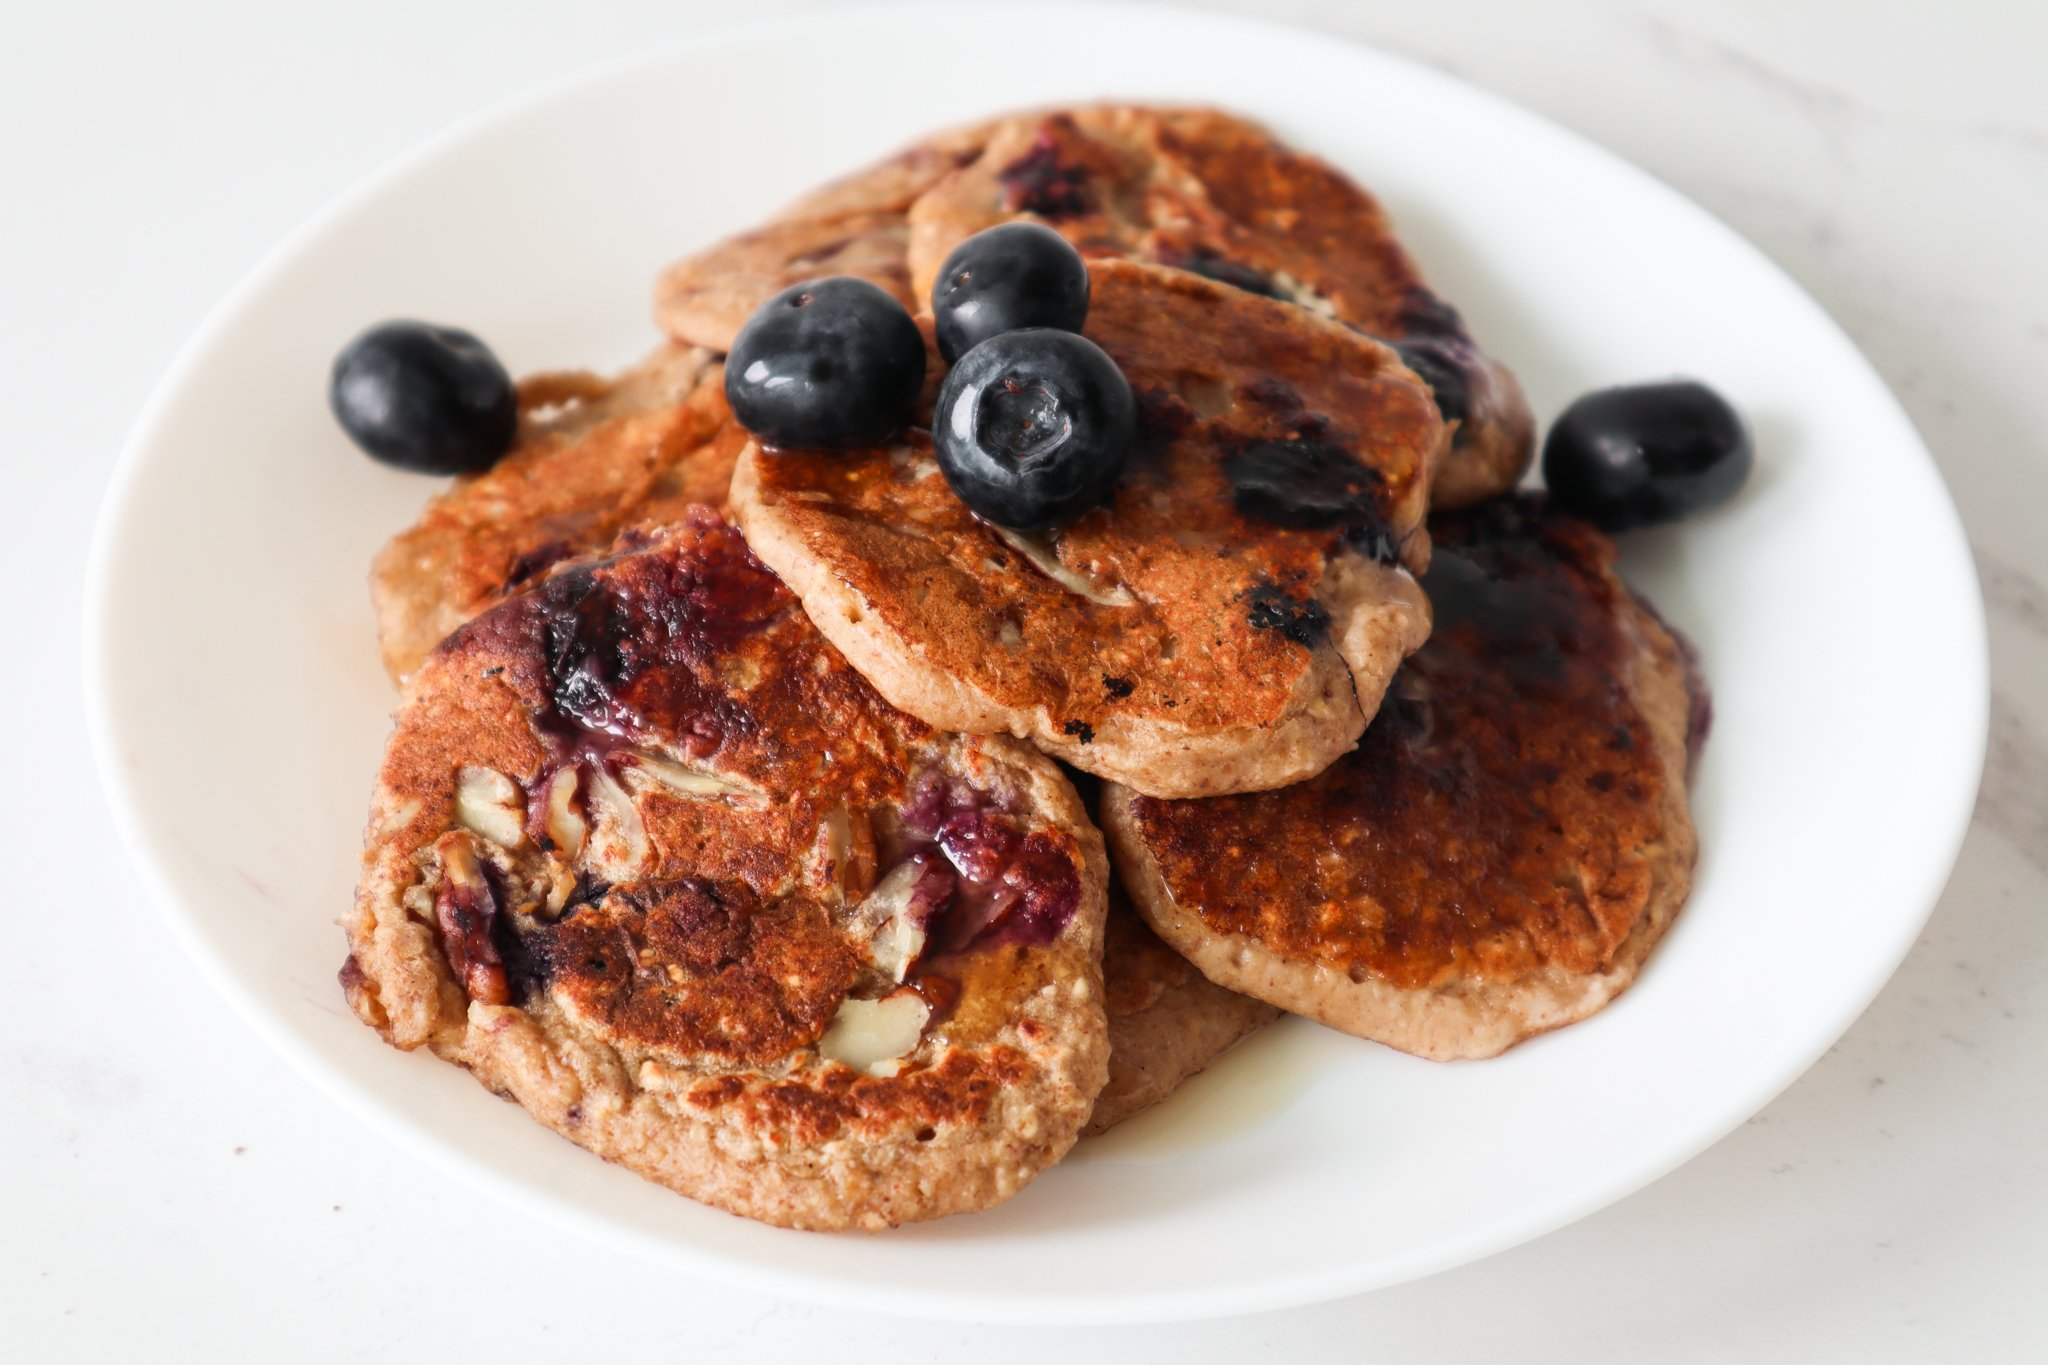 These vegan blueberry banana oatmeal pancakes are the easiest, best healthy gluten free dairy free breakfast idea! Made with oats, fruit, seeds and nuts this vegan oatmeal pancake recipe is nutritious and super tasty!